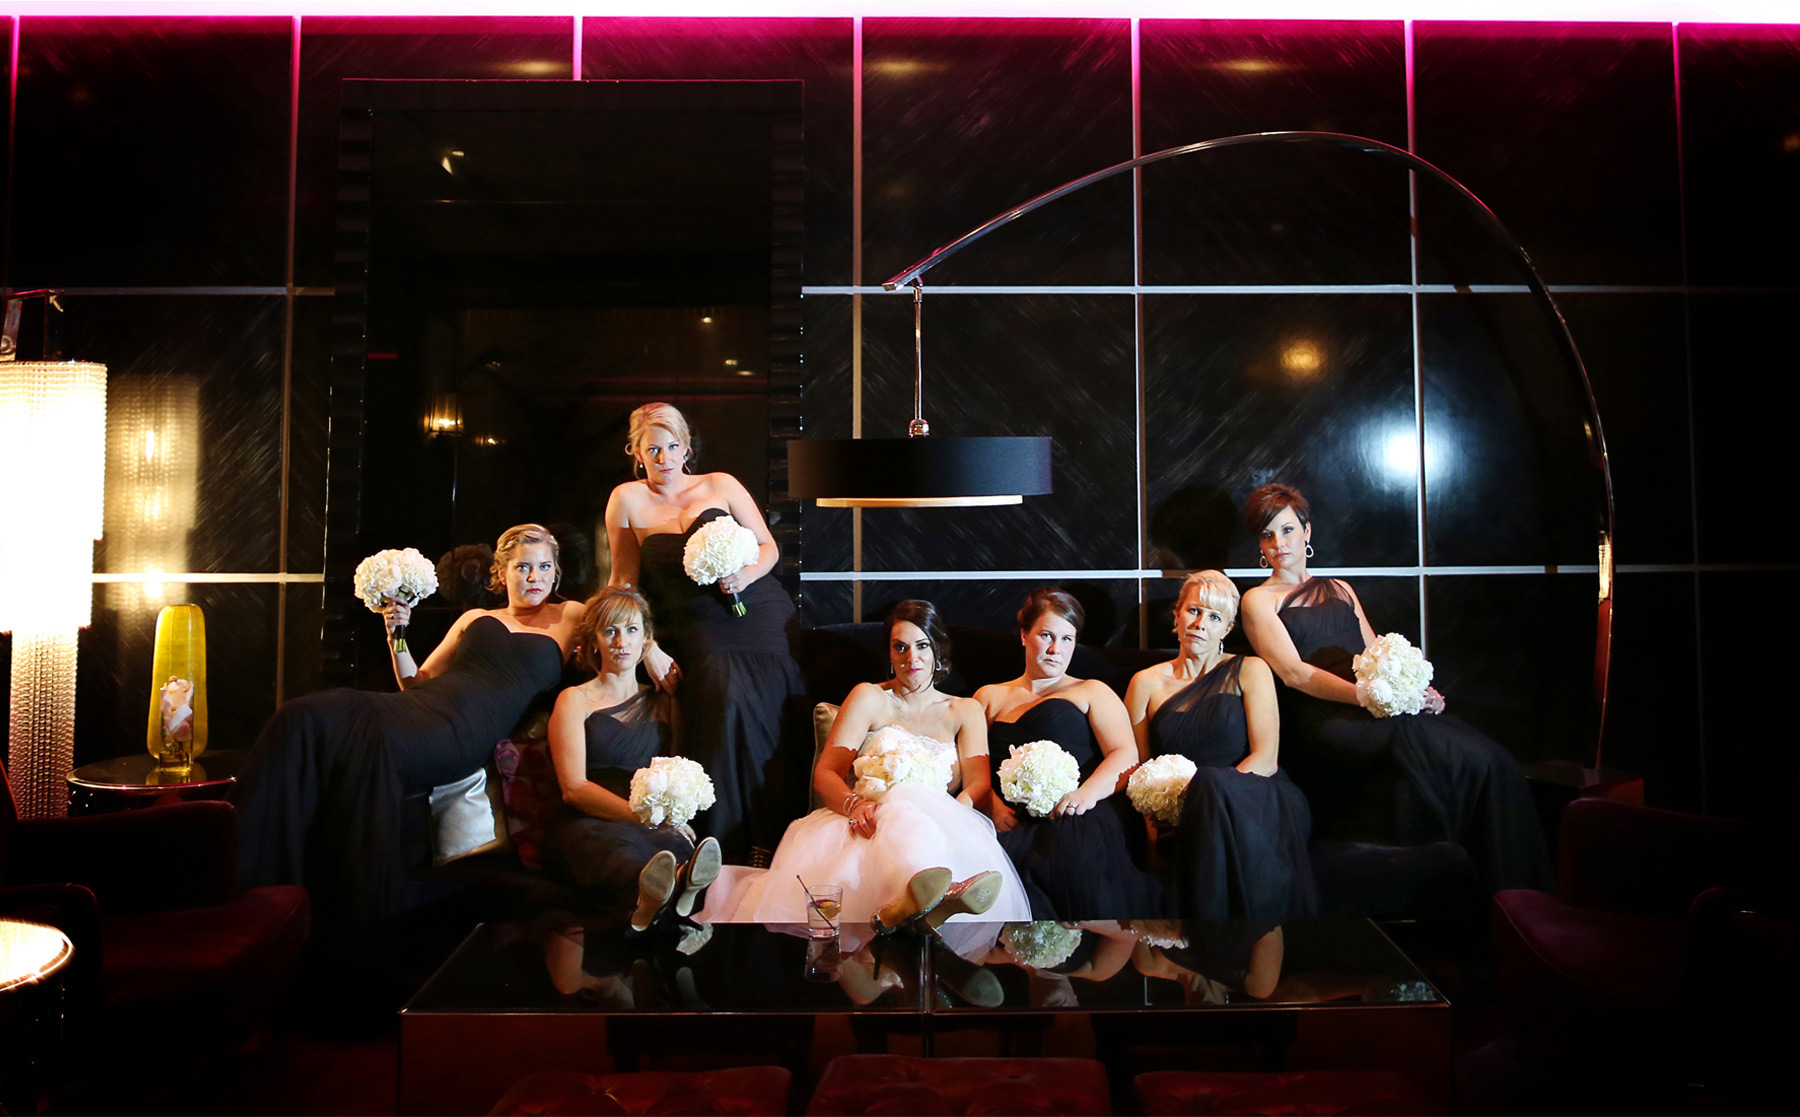 07-Minneapolis-Minnesota-Wedding-Photography-by-Vick-Photography-Downtown-Hotel-Lounge-Bridesmaids-Megan-and-Andrew.jpg